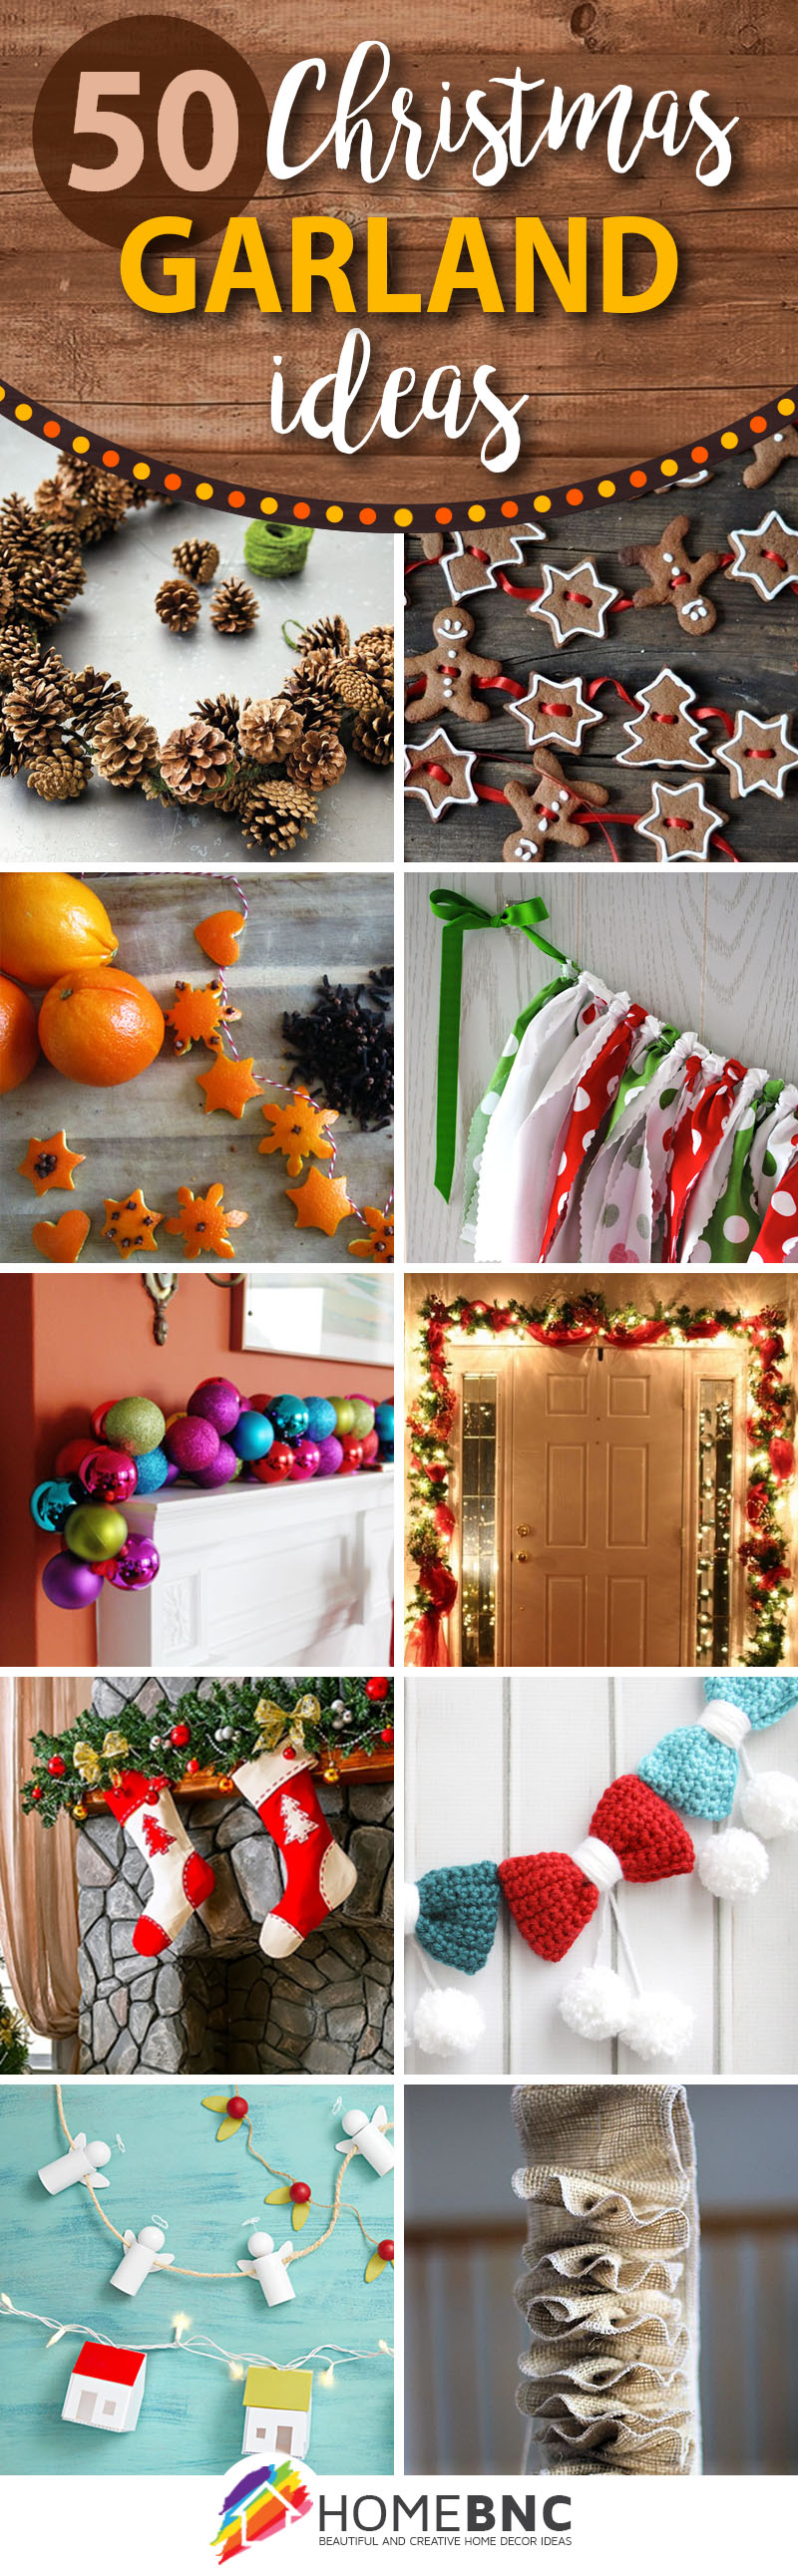 50 Best Diy Christmas Garland Decorating Ideas For 2019